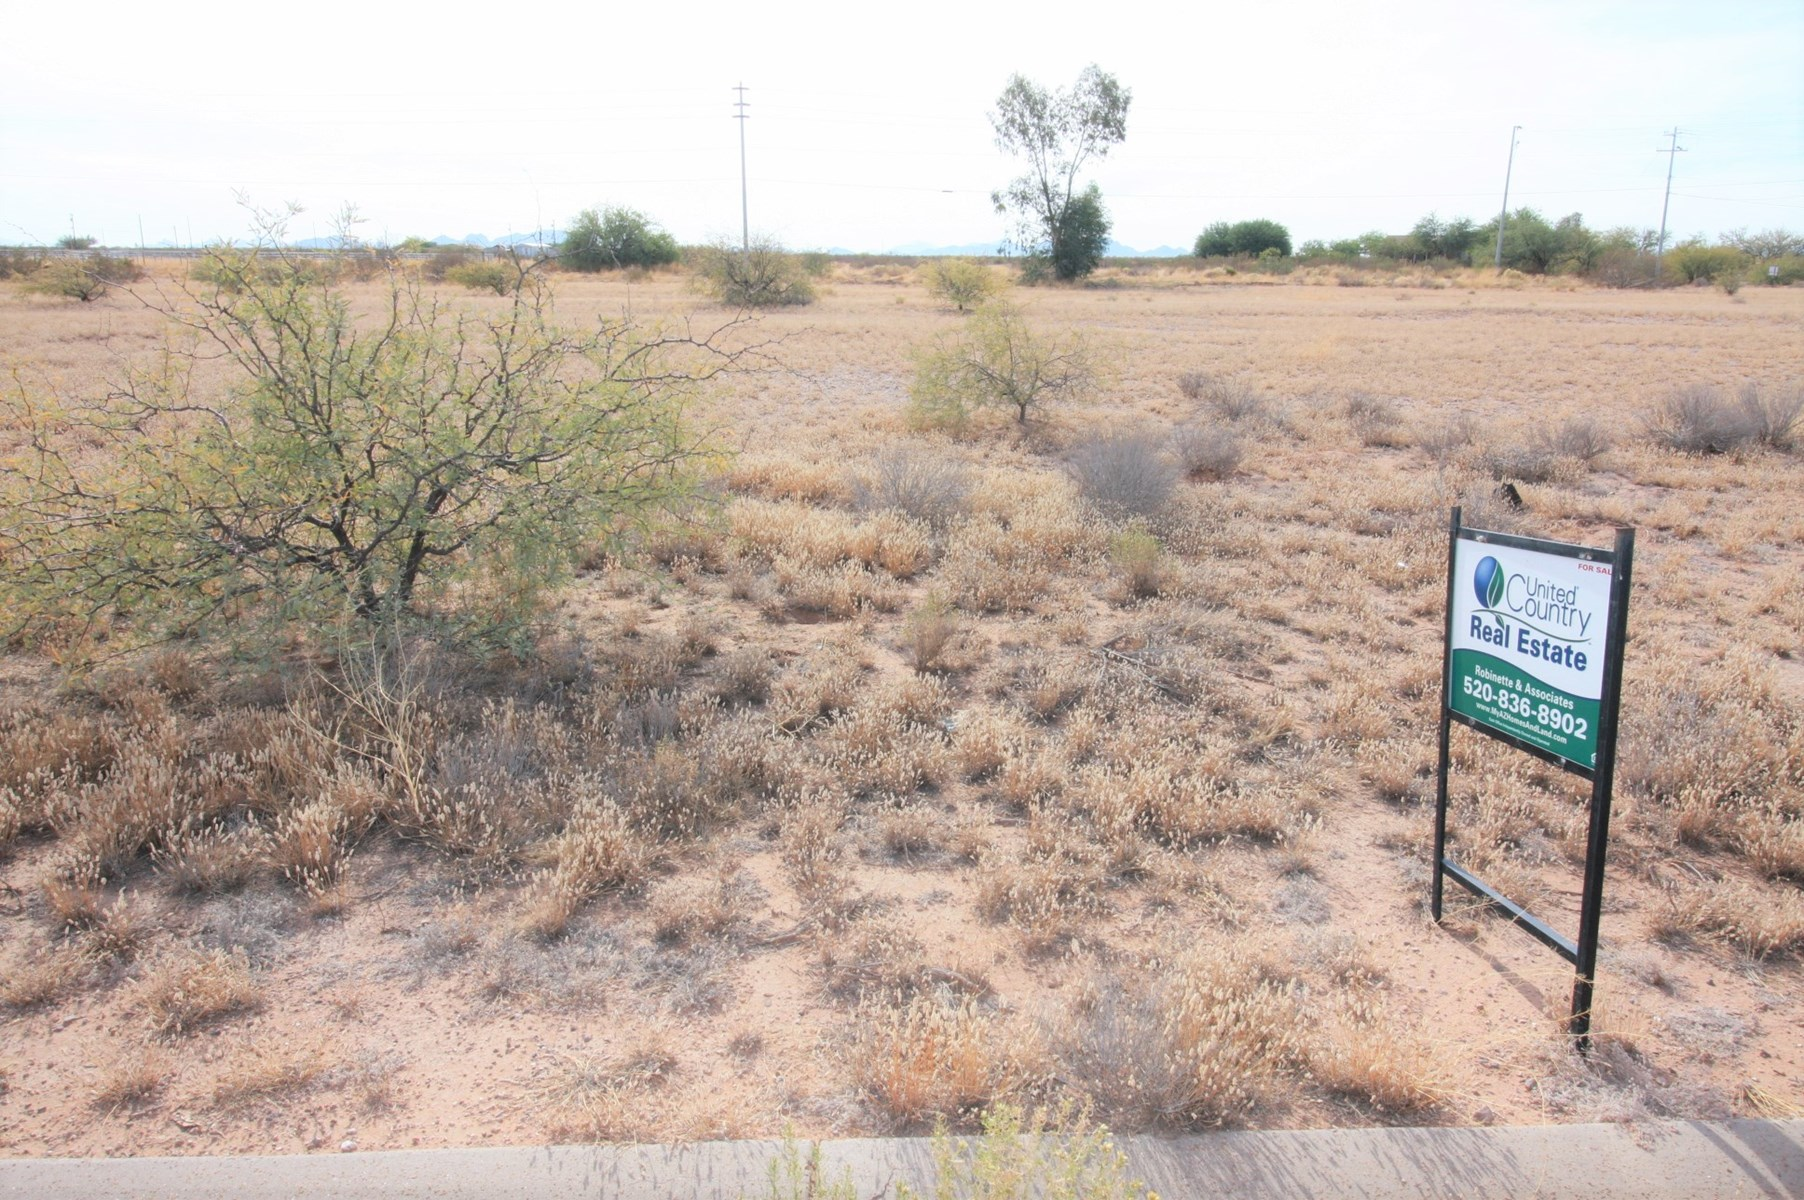 Land for sale Arizona, Casa Grande Land for sale near Lucid